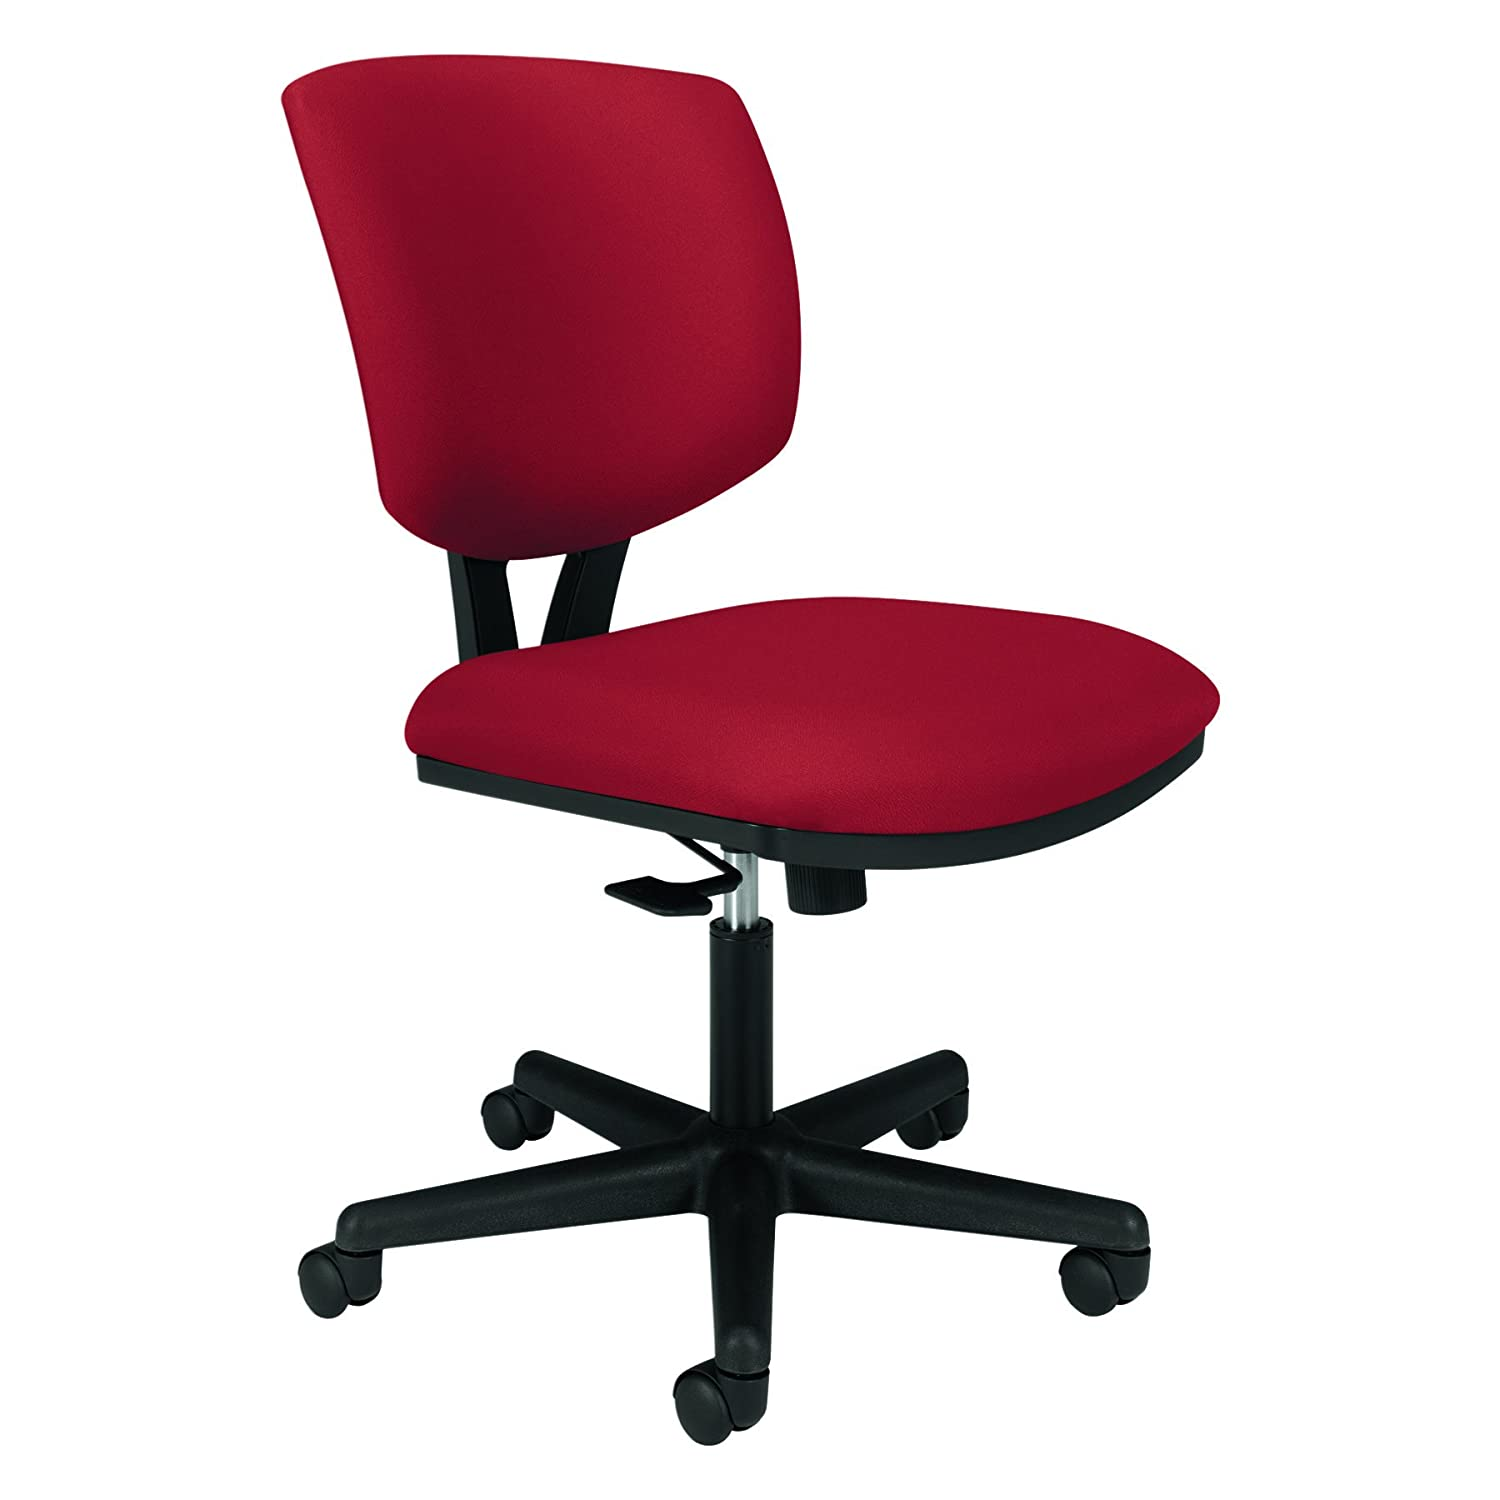 Volt HON Office Upholstered Task Chair Review